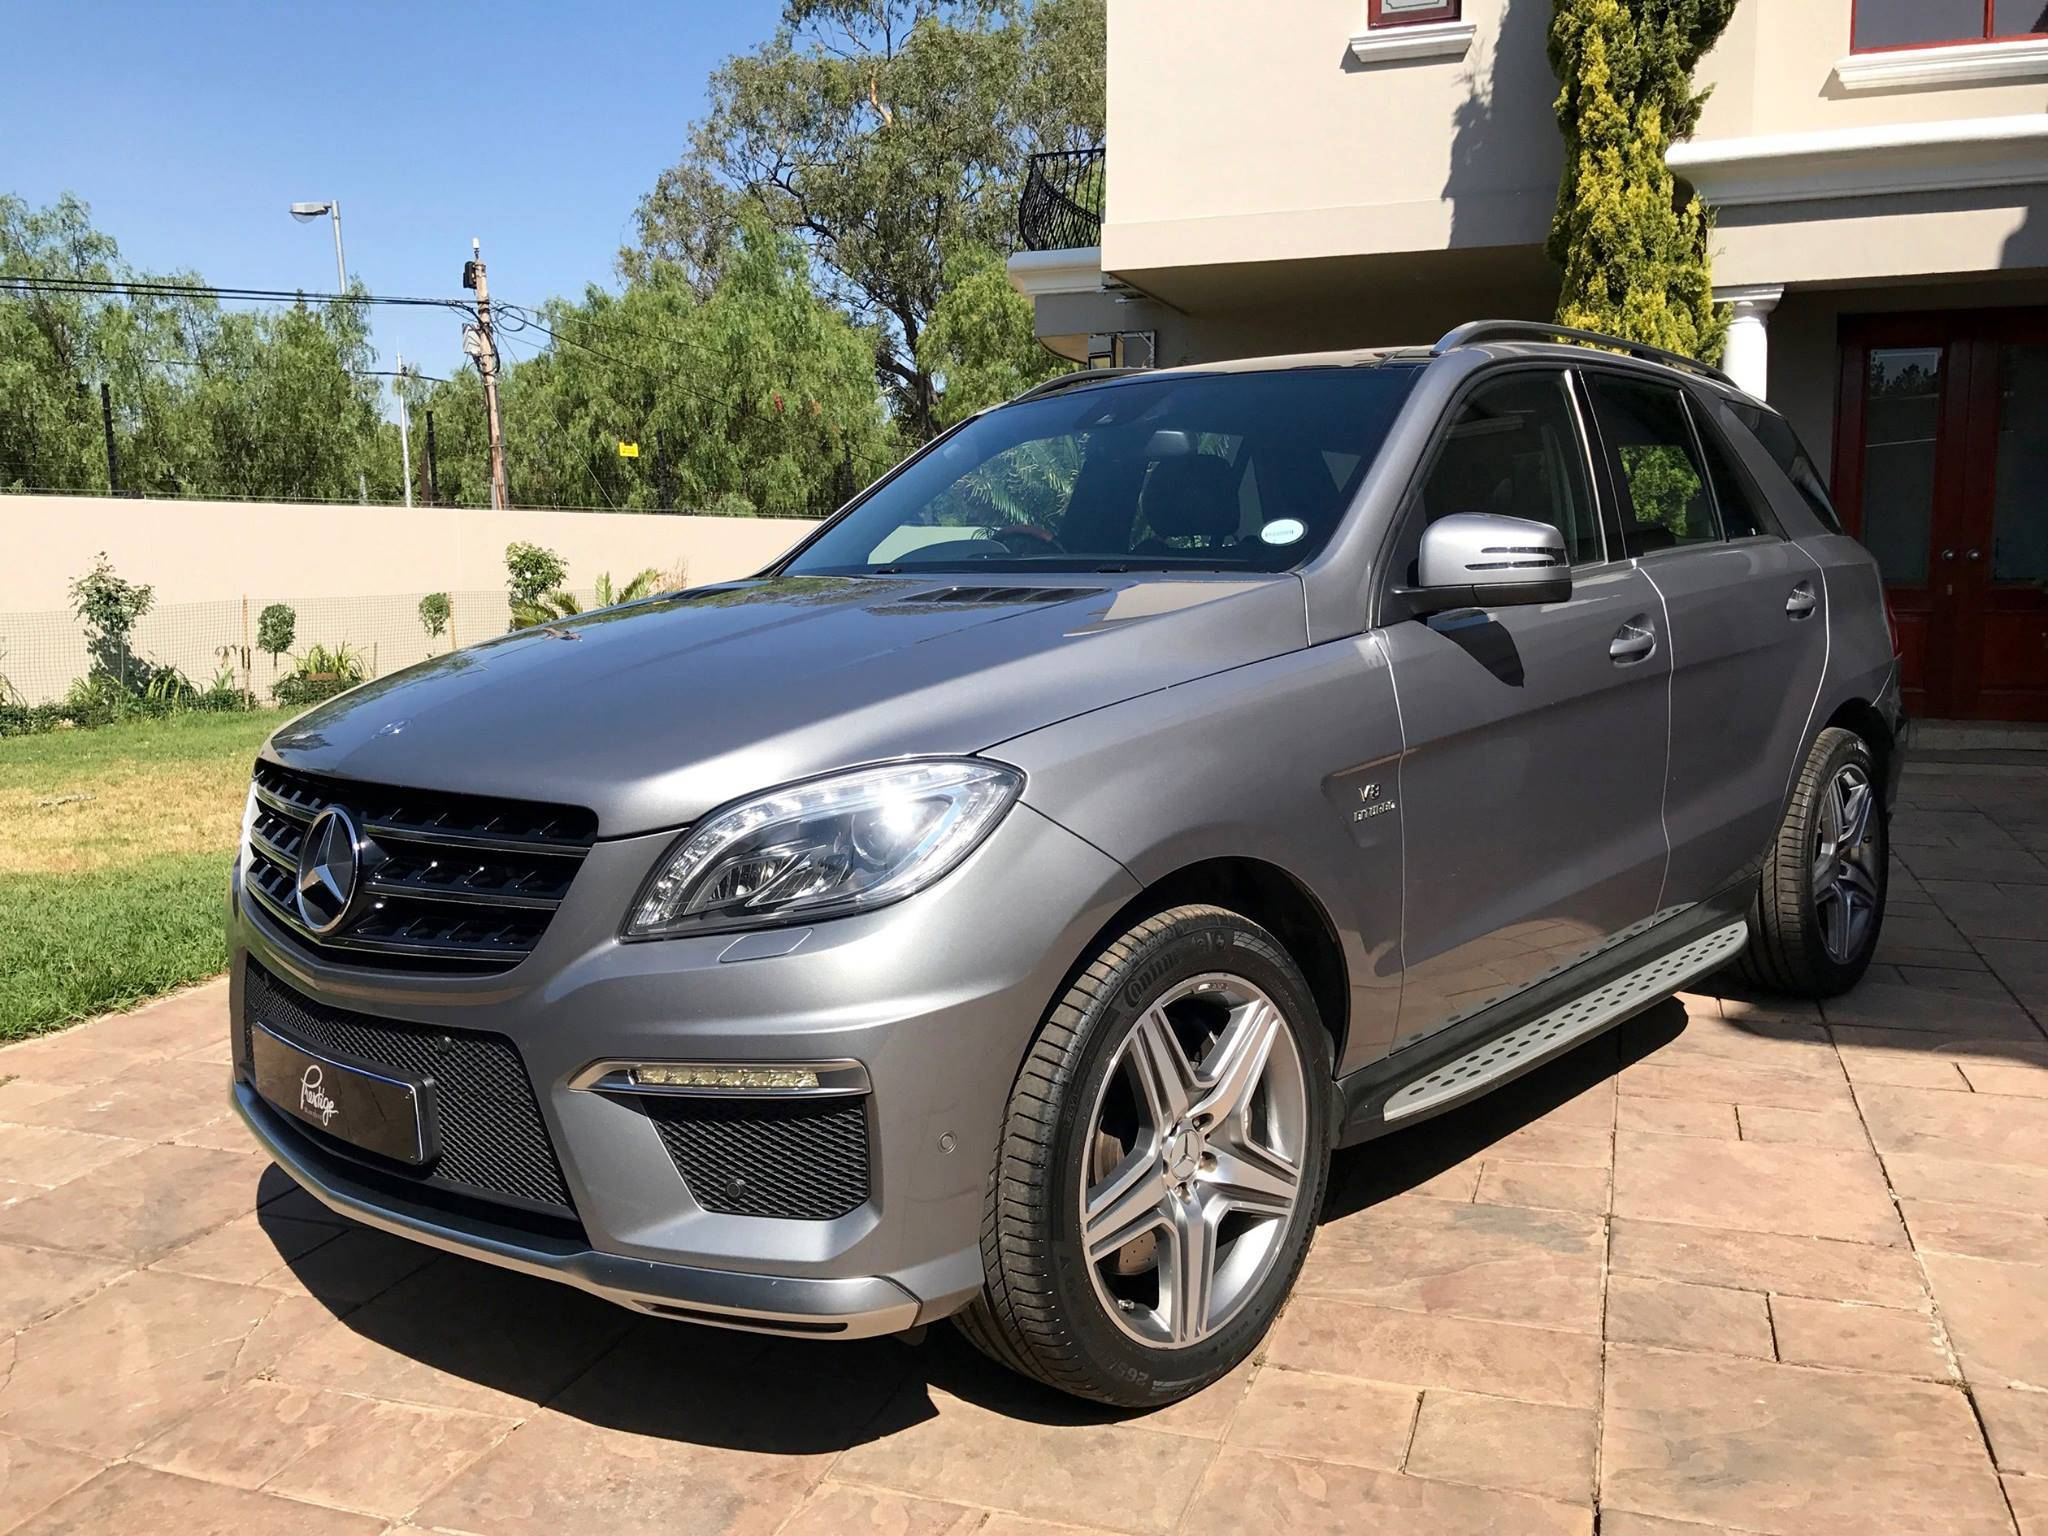 Mercedes benz ml63 amg prestige marques for Mercedes benz prestige